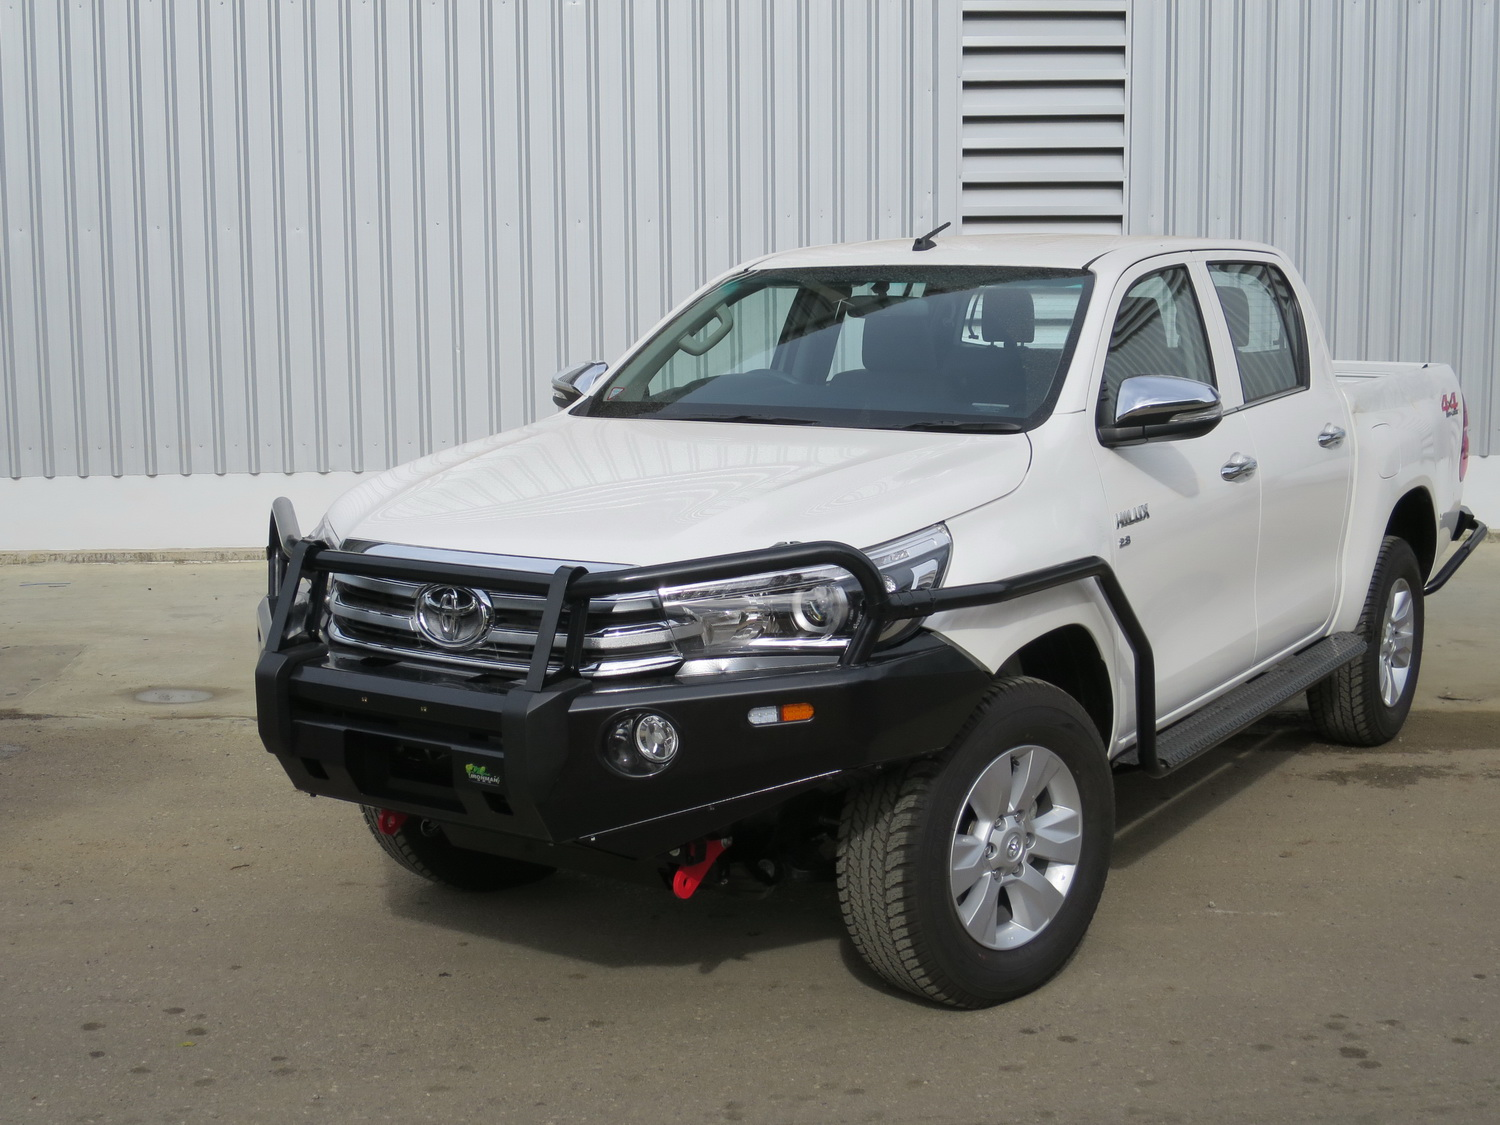 Ironman 4X4 preview barwork for the 2015 Toyota Hilux   Practical